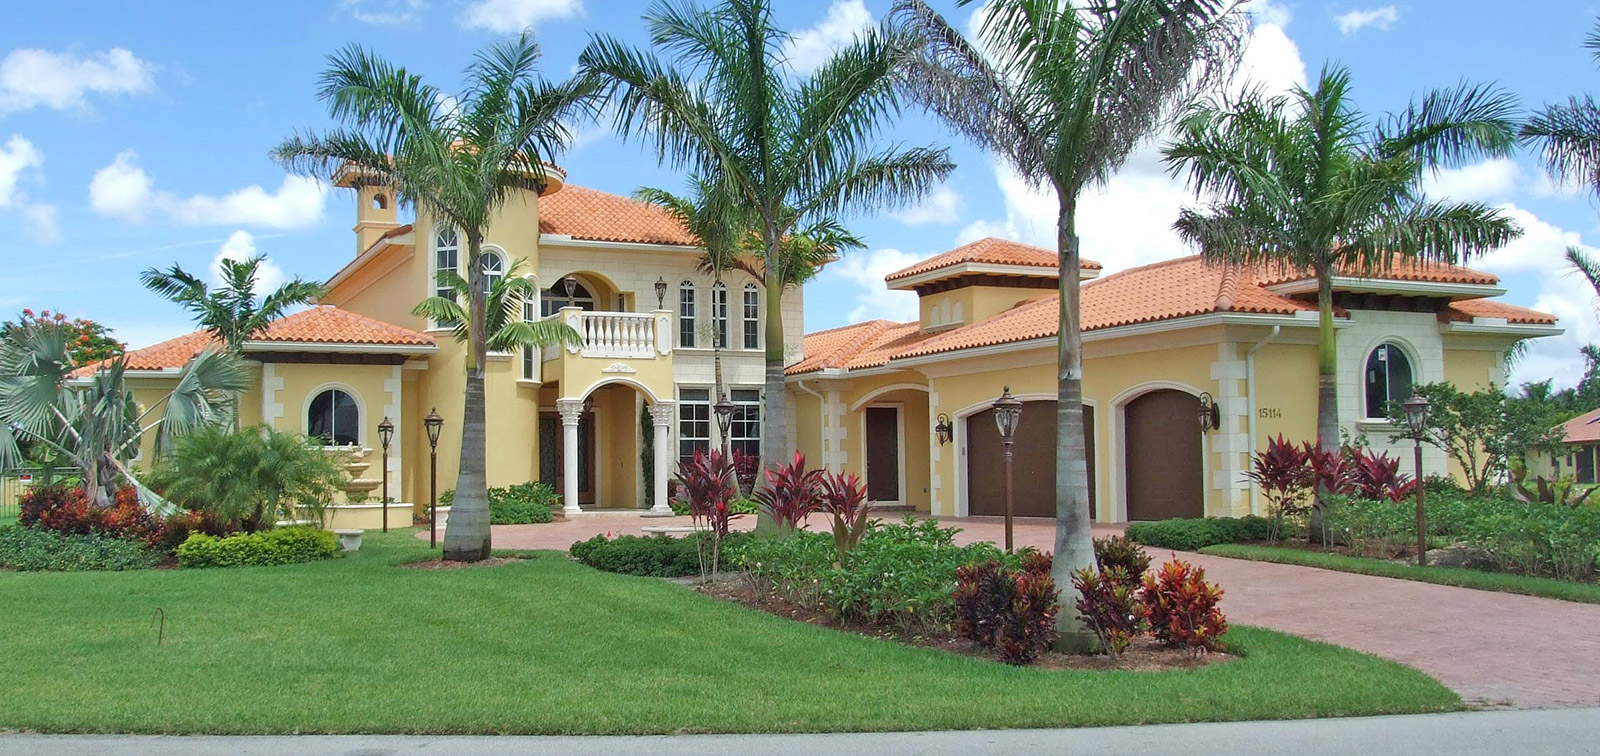 fort lauderdale luxury home architect photo